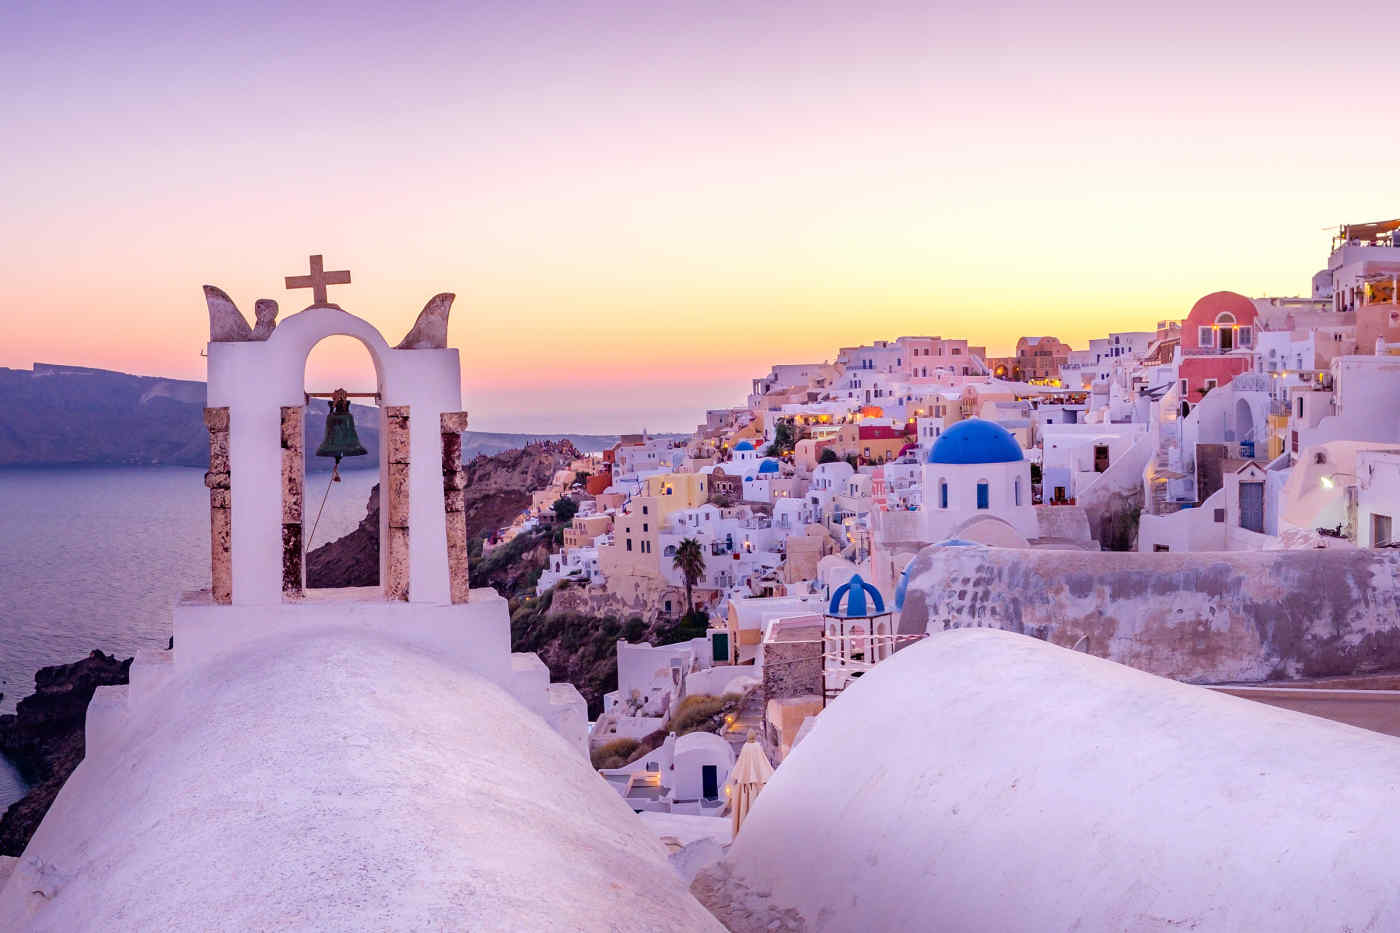 Sunset • Oia, Santorini, Greece